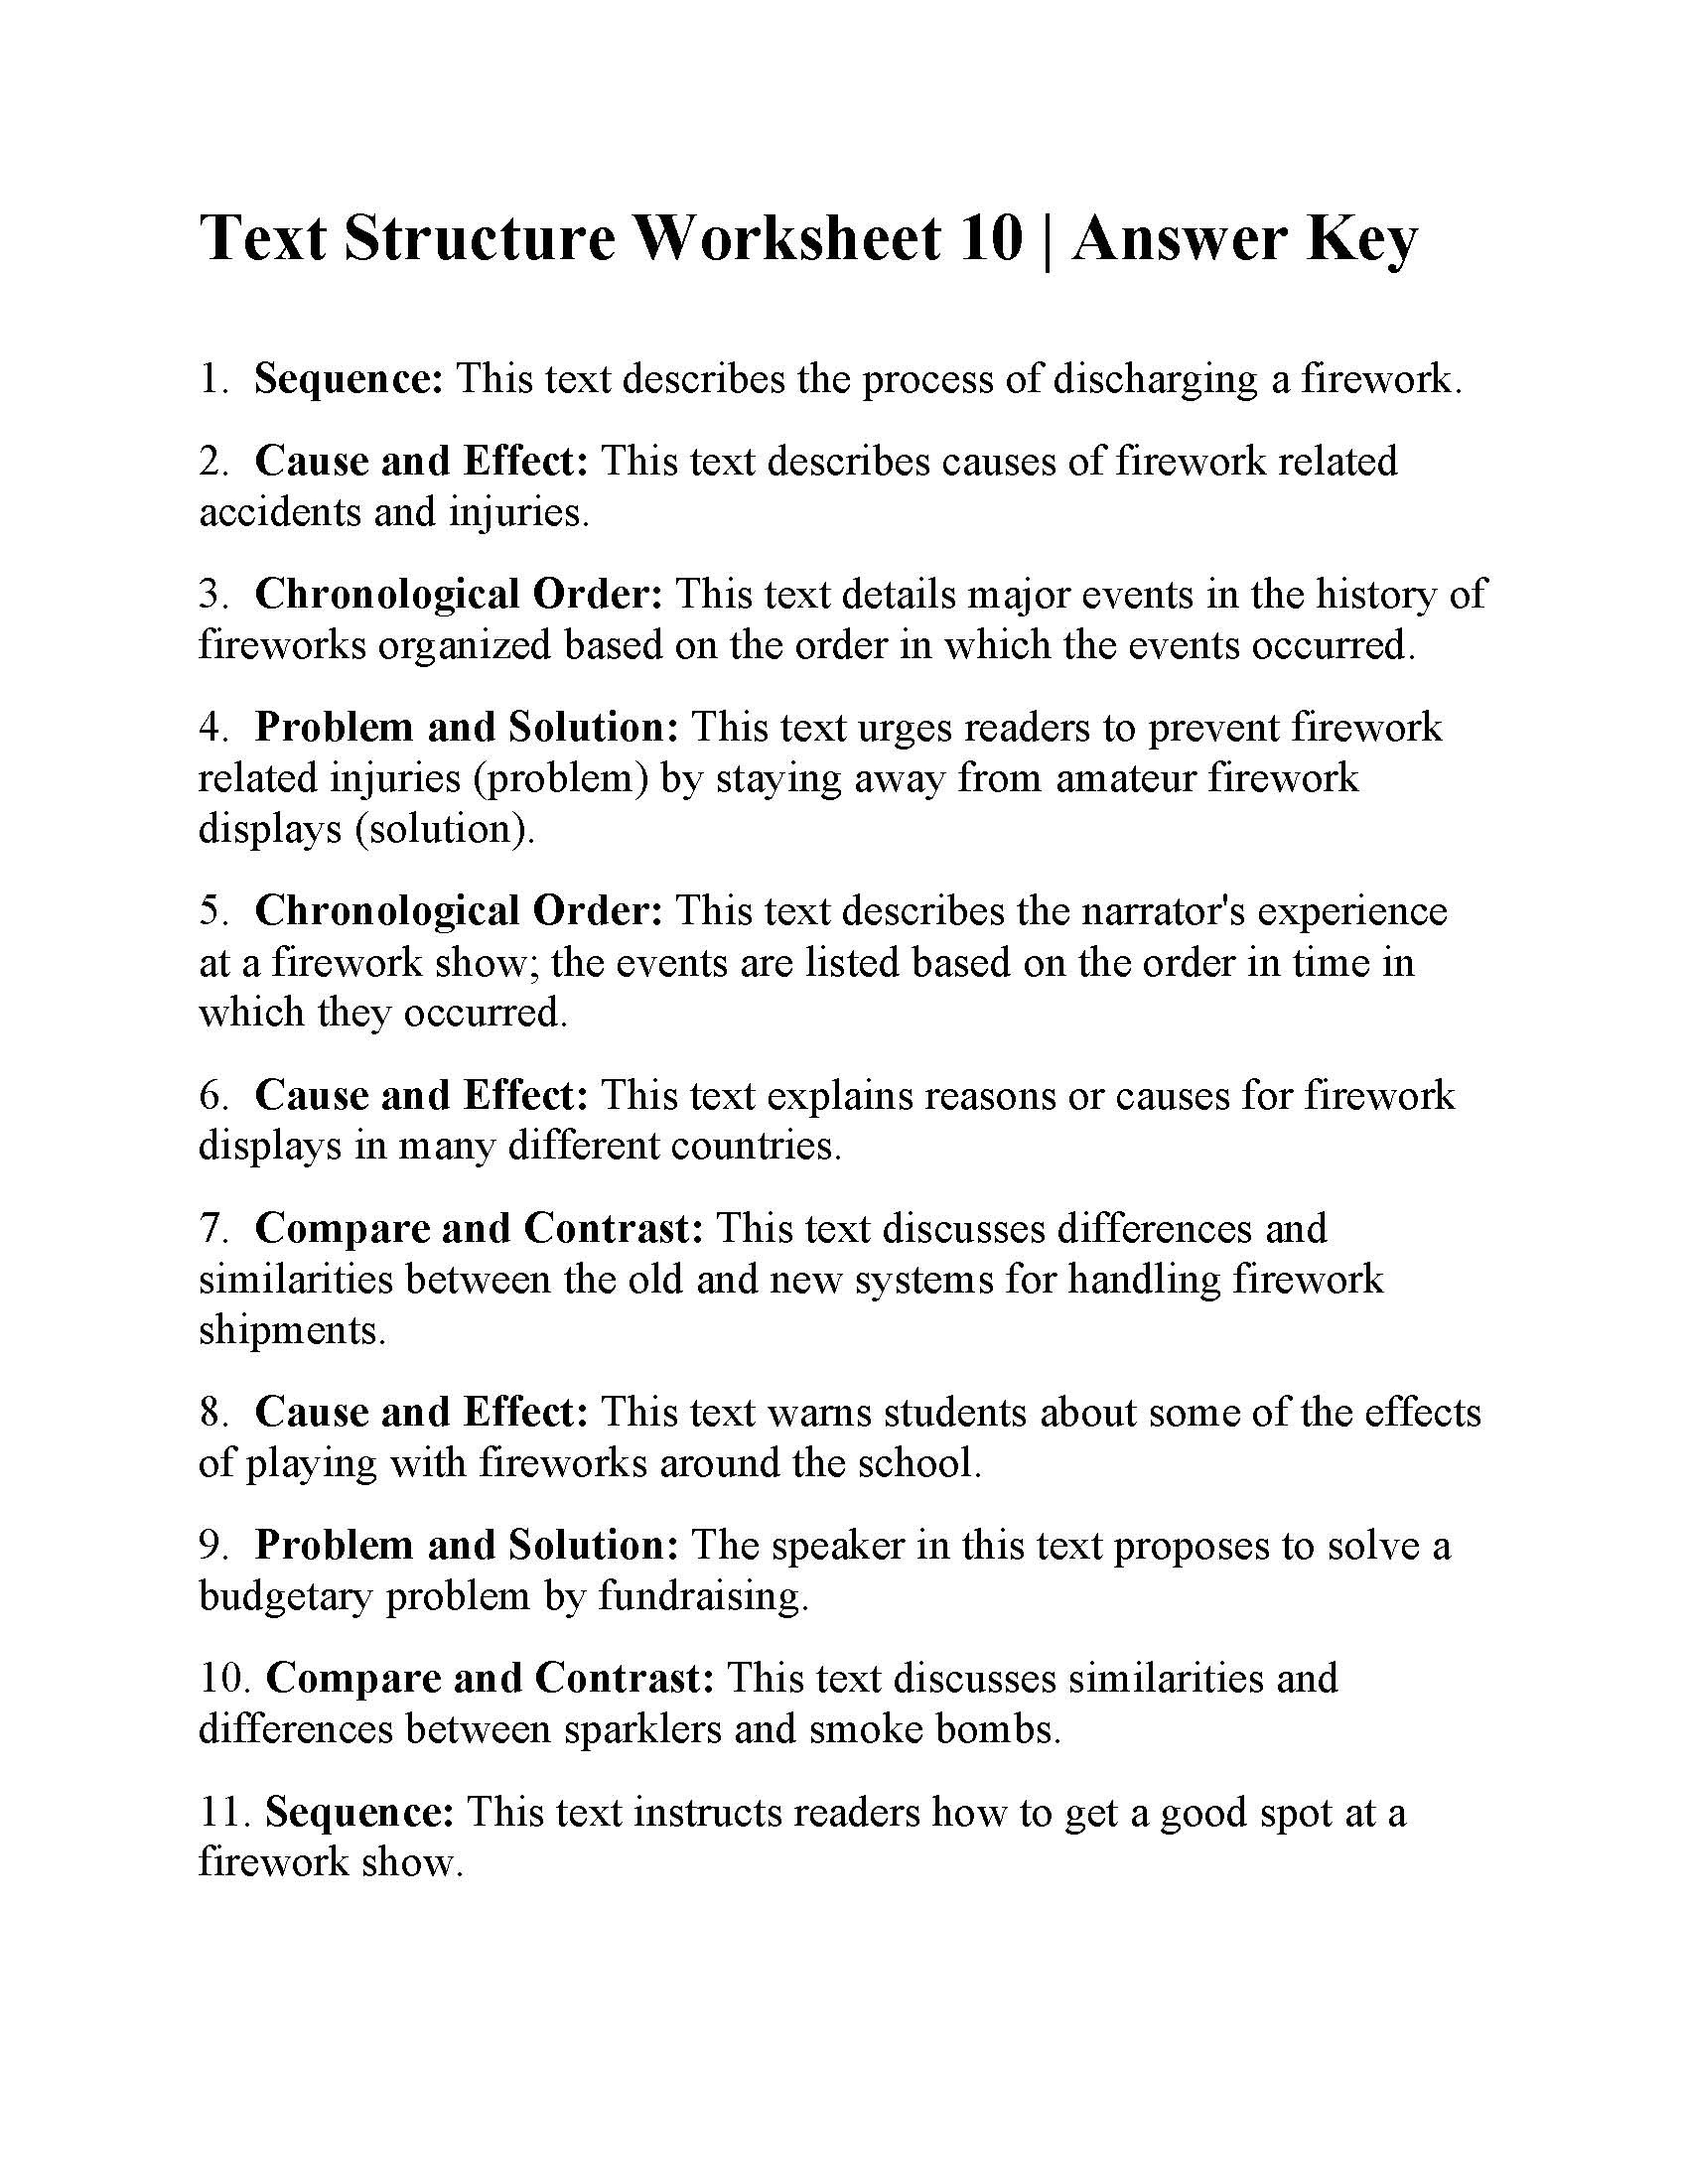 Text Structure 3rd Grade Worksheets Adding Improper Fractions Worksheet with Answers Merit Badge